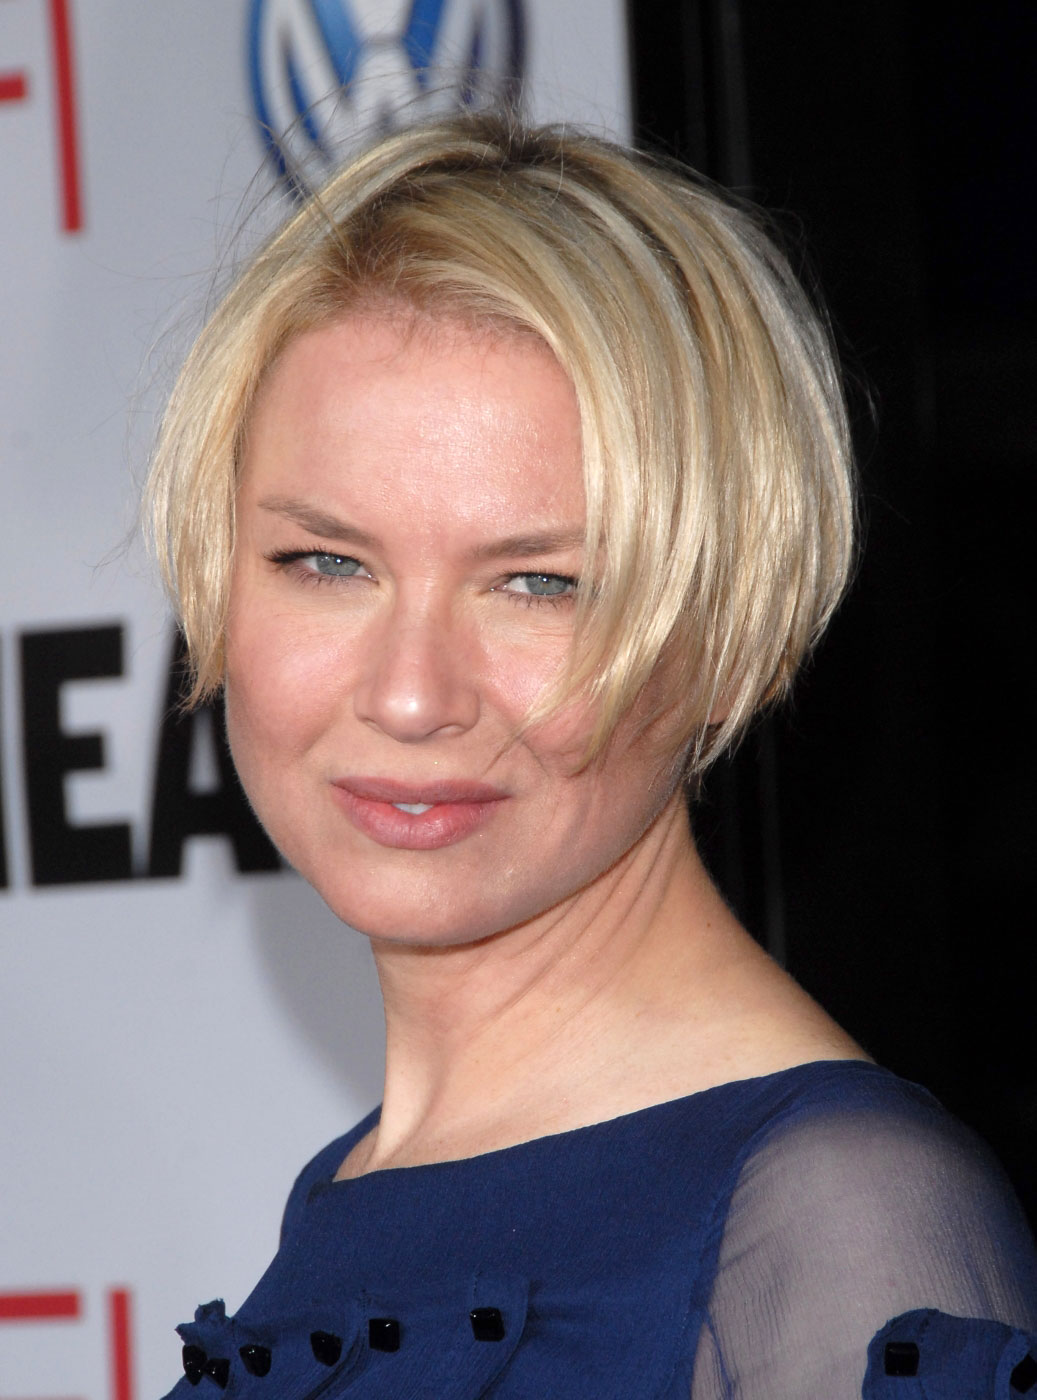 Rene Zellweger - Photo Set